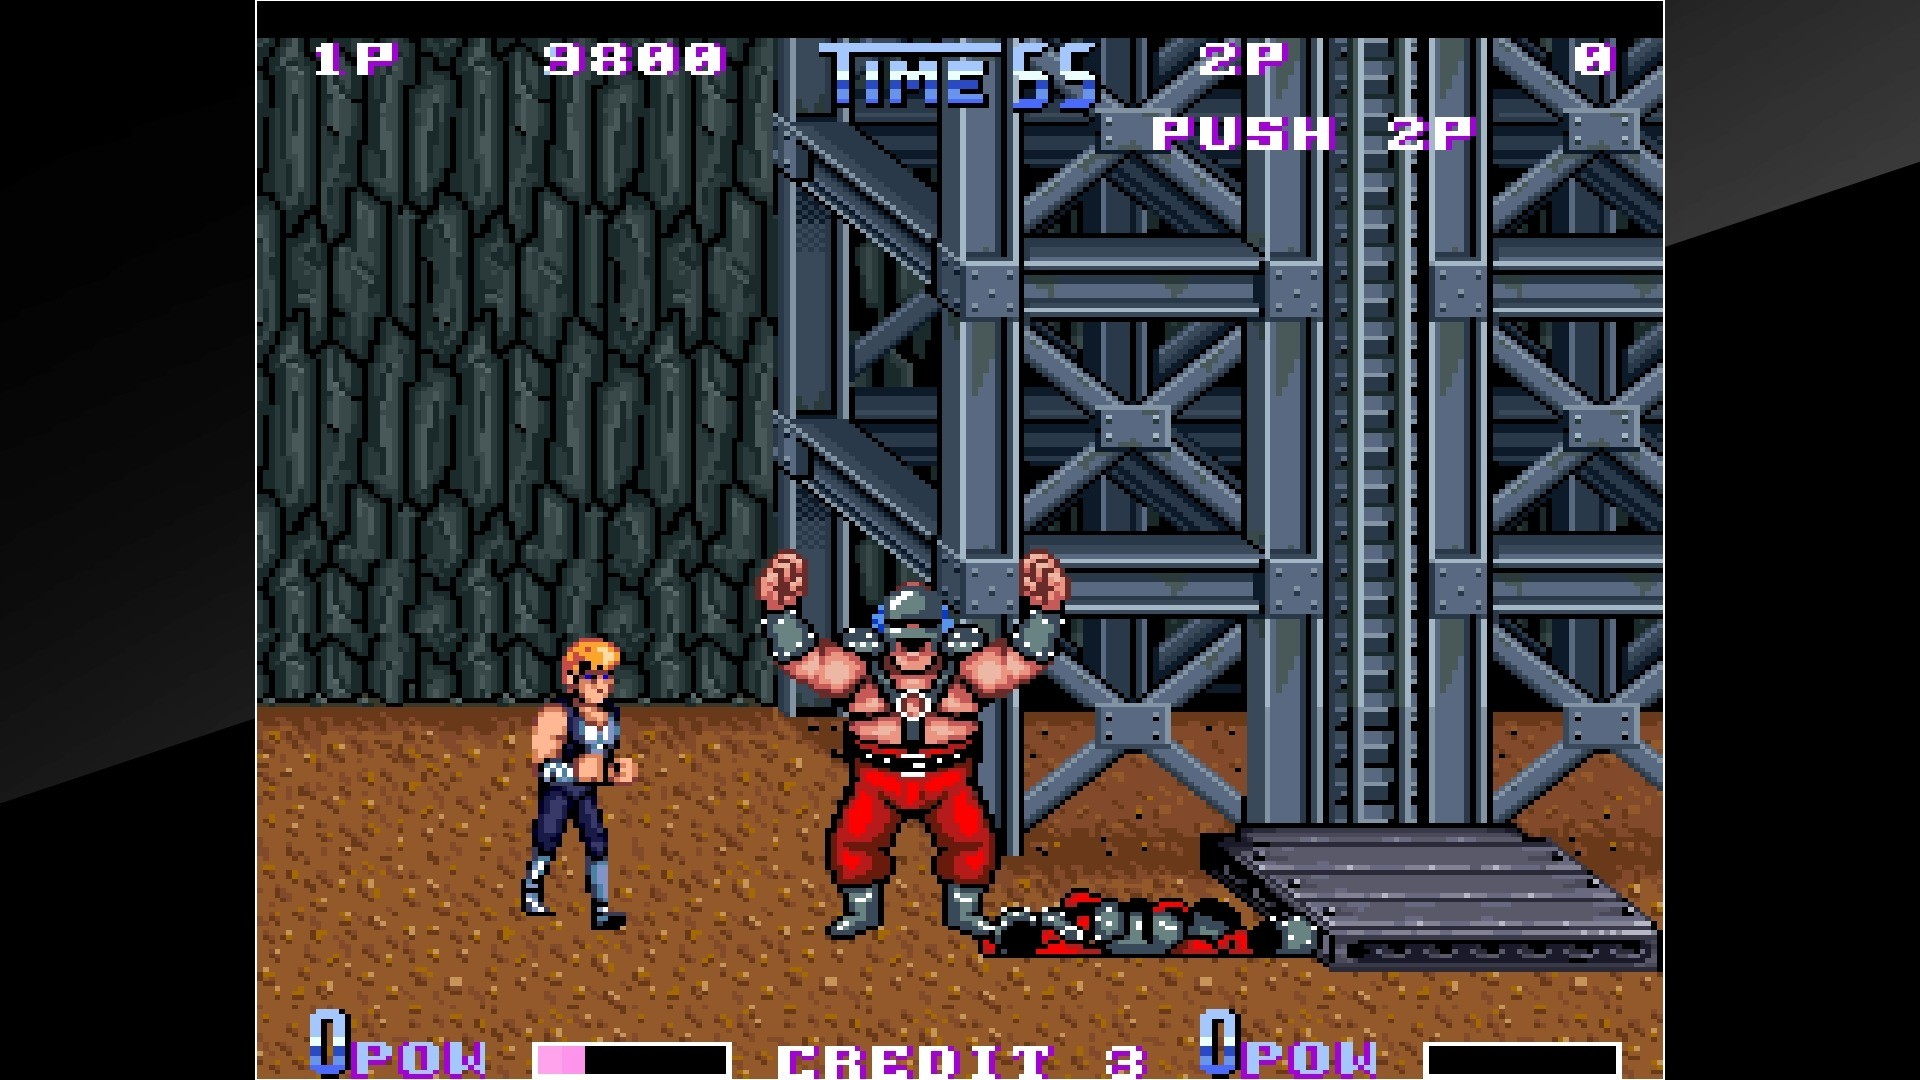 Res: 1920x1080, Arcade Archives -- Double Dragon II: The Revenge Images